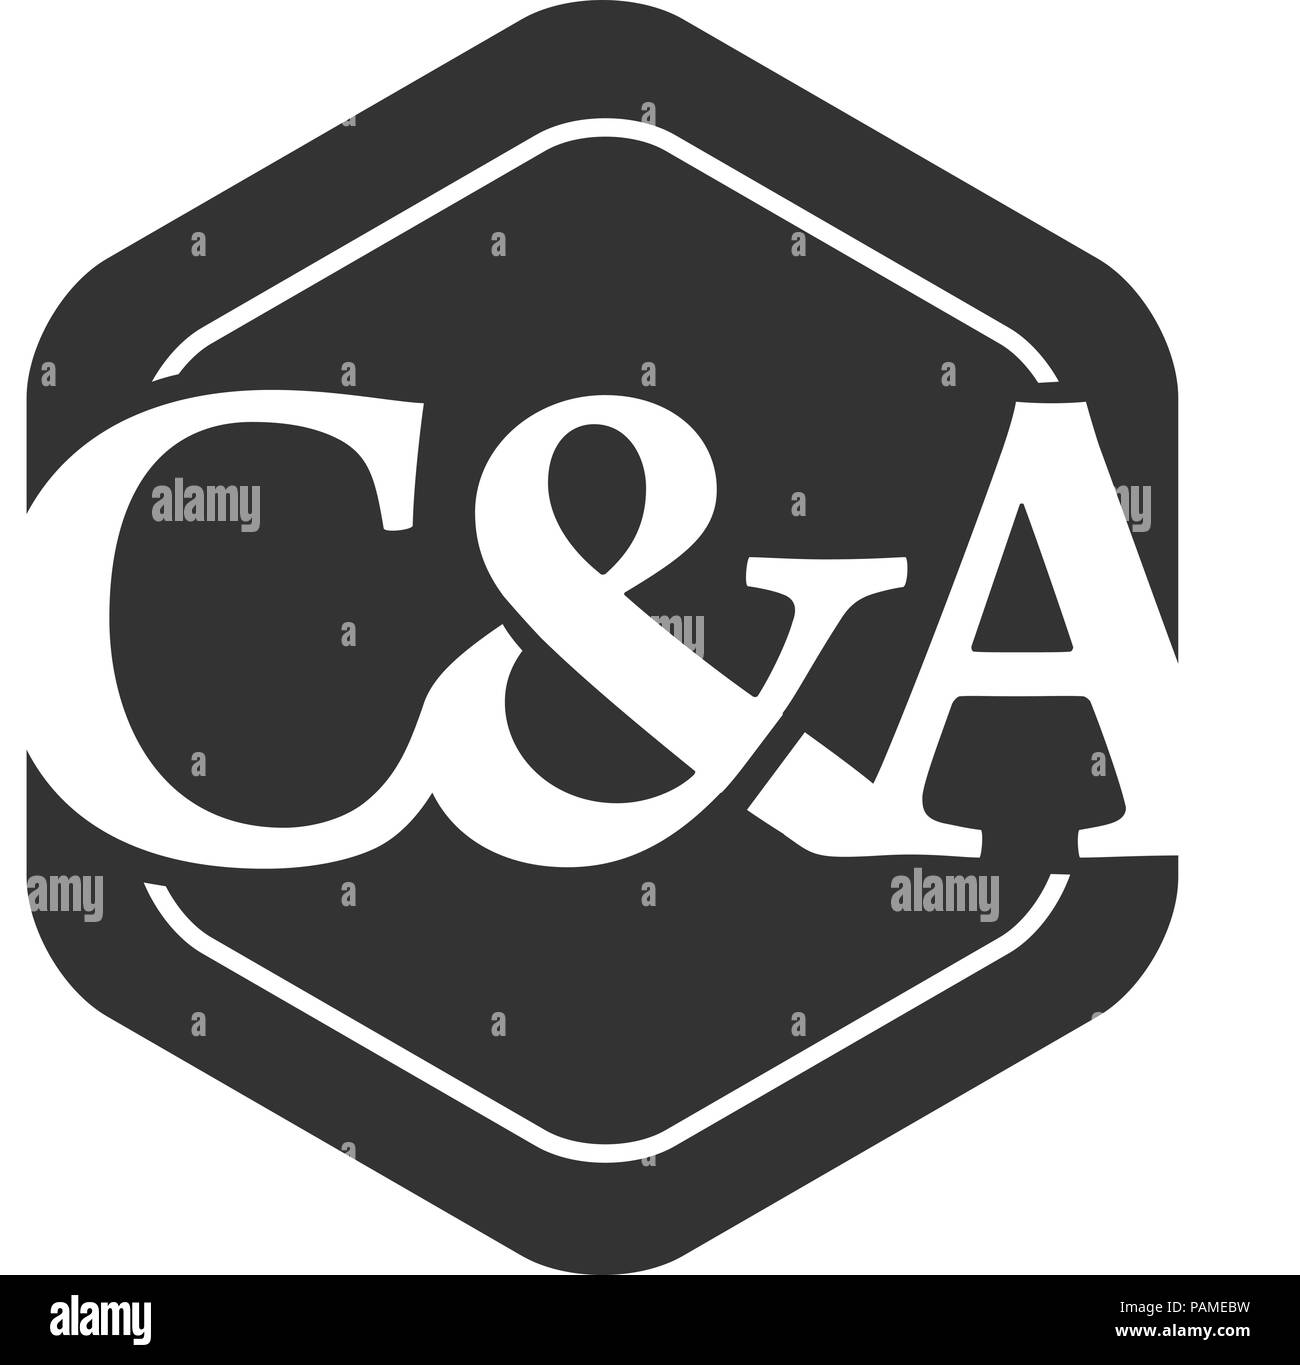 Letter C A Hexagon Logo C And A Letter Logo Design Vector Illustration Template Creative Letter C A C And A Logo Stock Vector Image Art Alamy